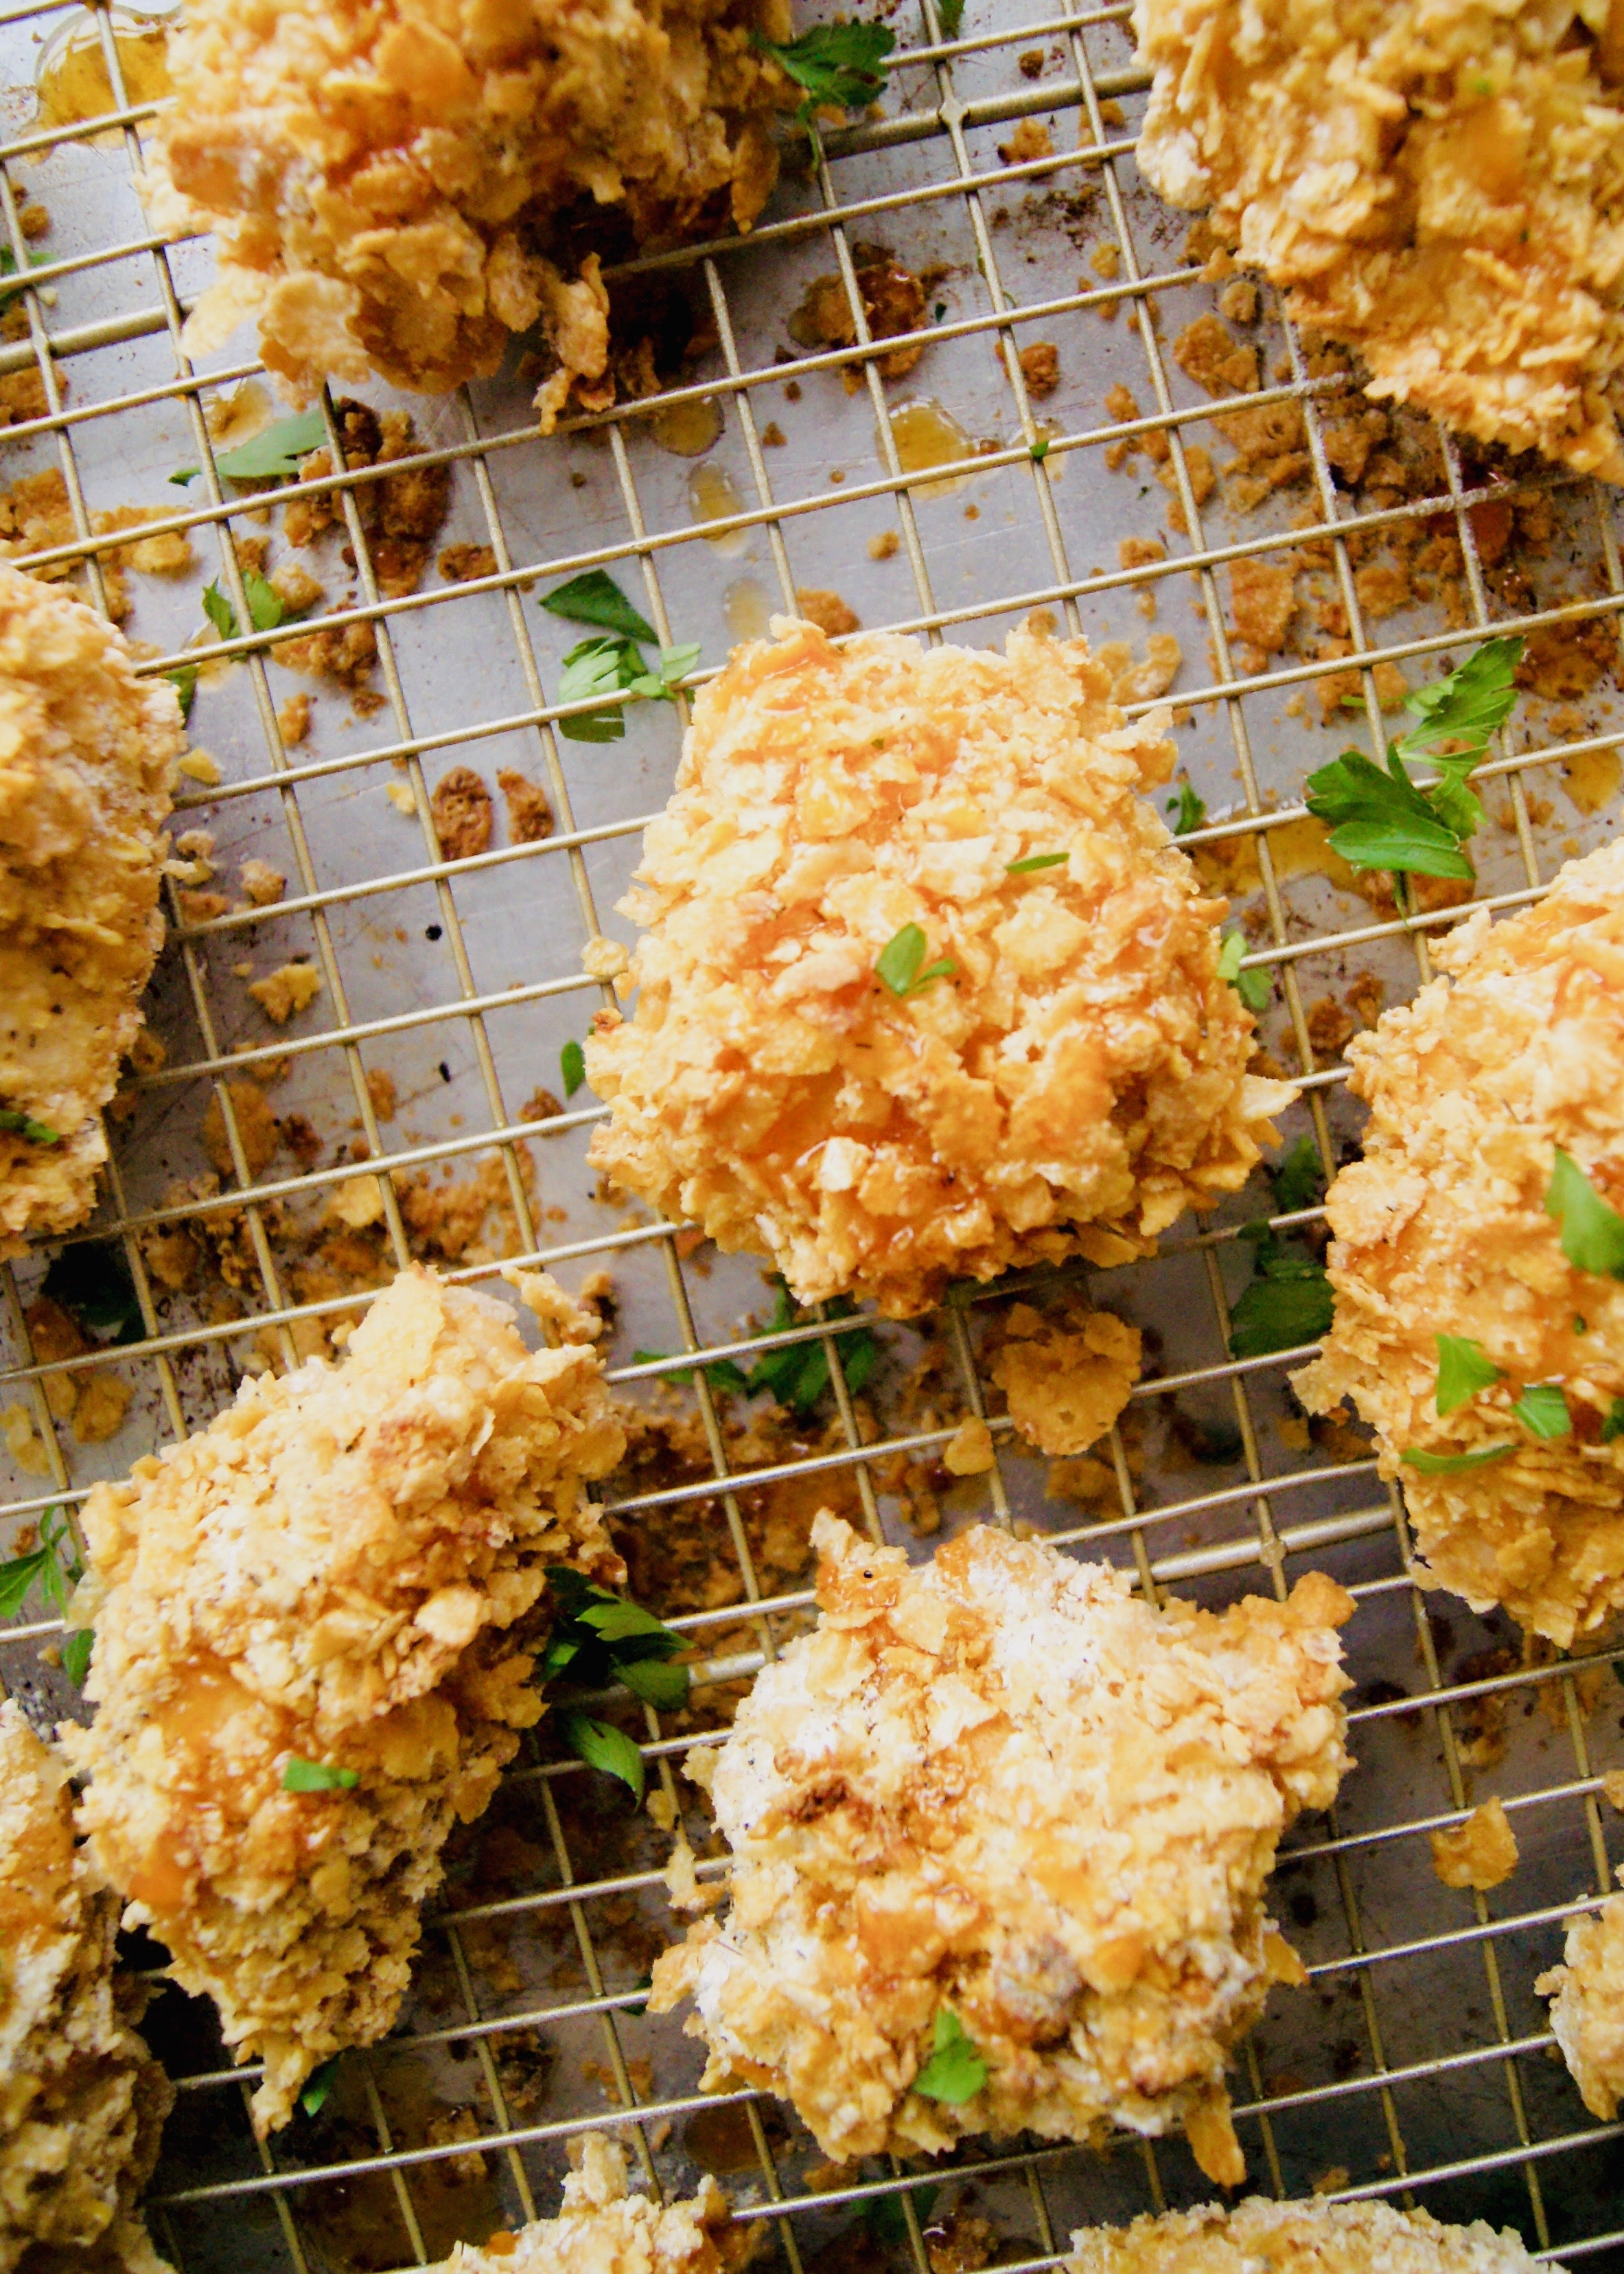 "data-pin-description=""Crispy and made healthier, this Oven Fried Hot Honey Chicken is stuff of dreams. Breaded in cornflakes to make it crisp and crunchy. Recipe at KathleensCravings.com #healthy #easyrecipe #chickenbreast #friedchicken"""